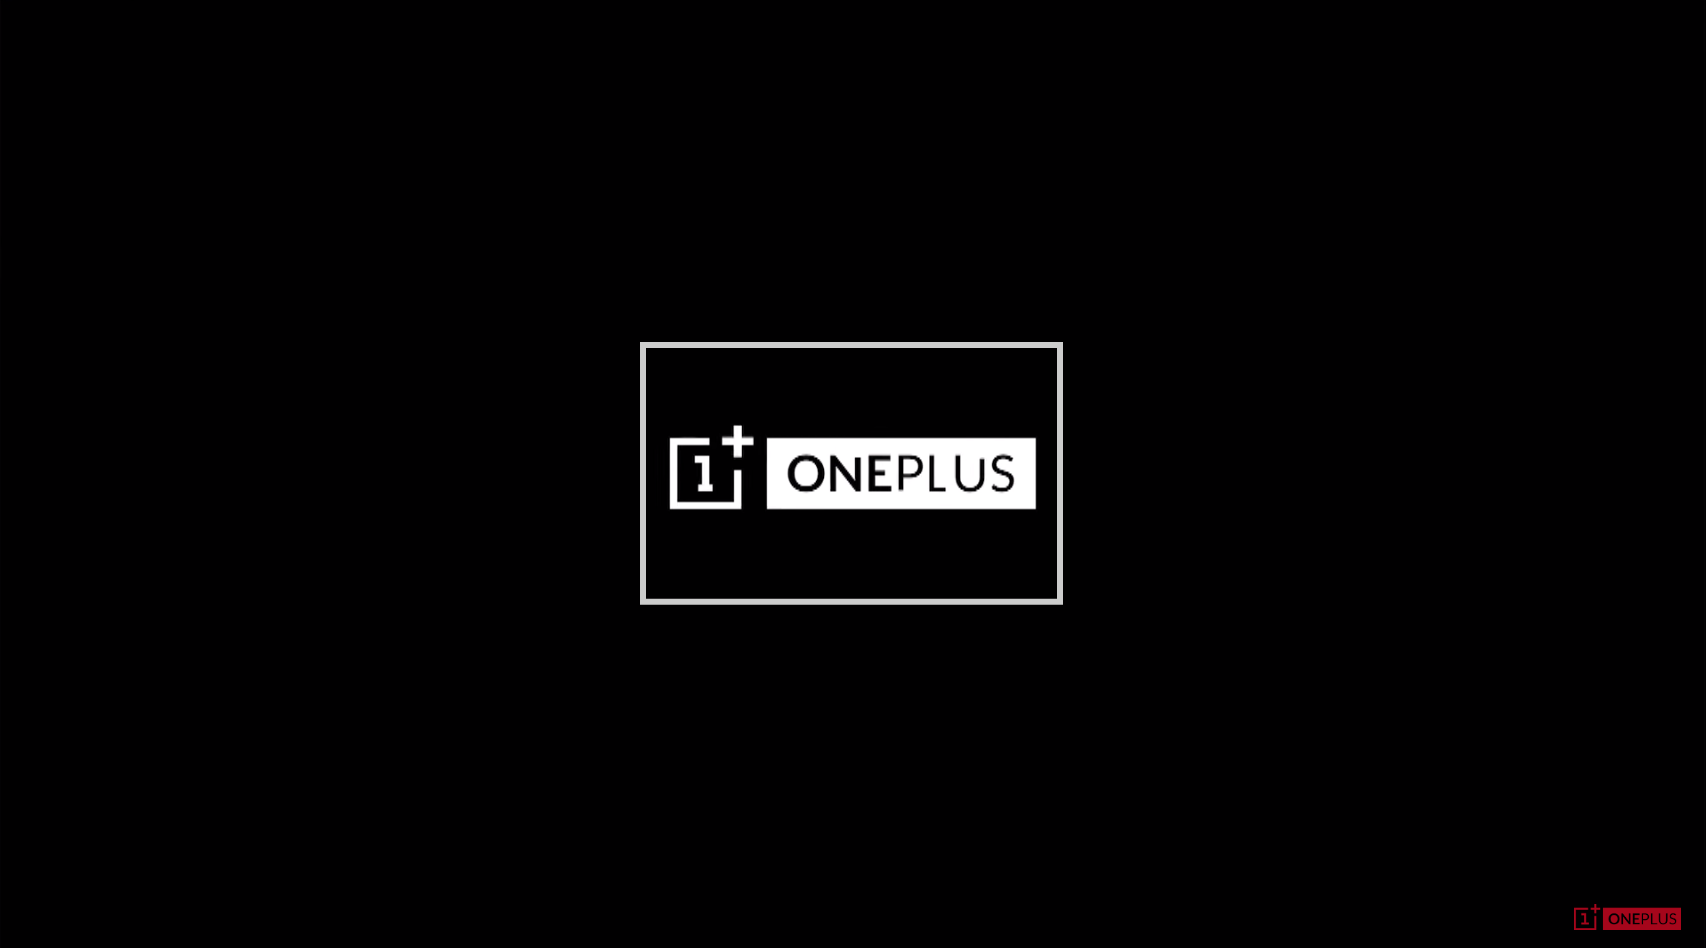 Time to greet the OnePlus 5 before it\'s official.